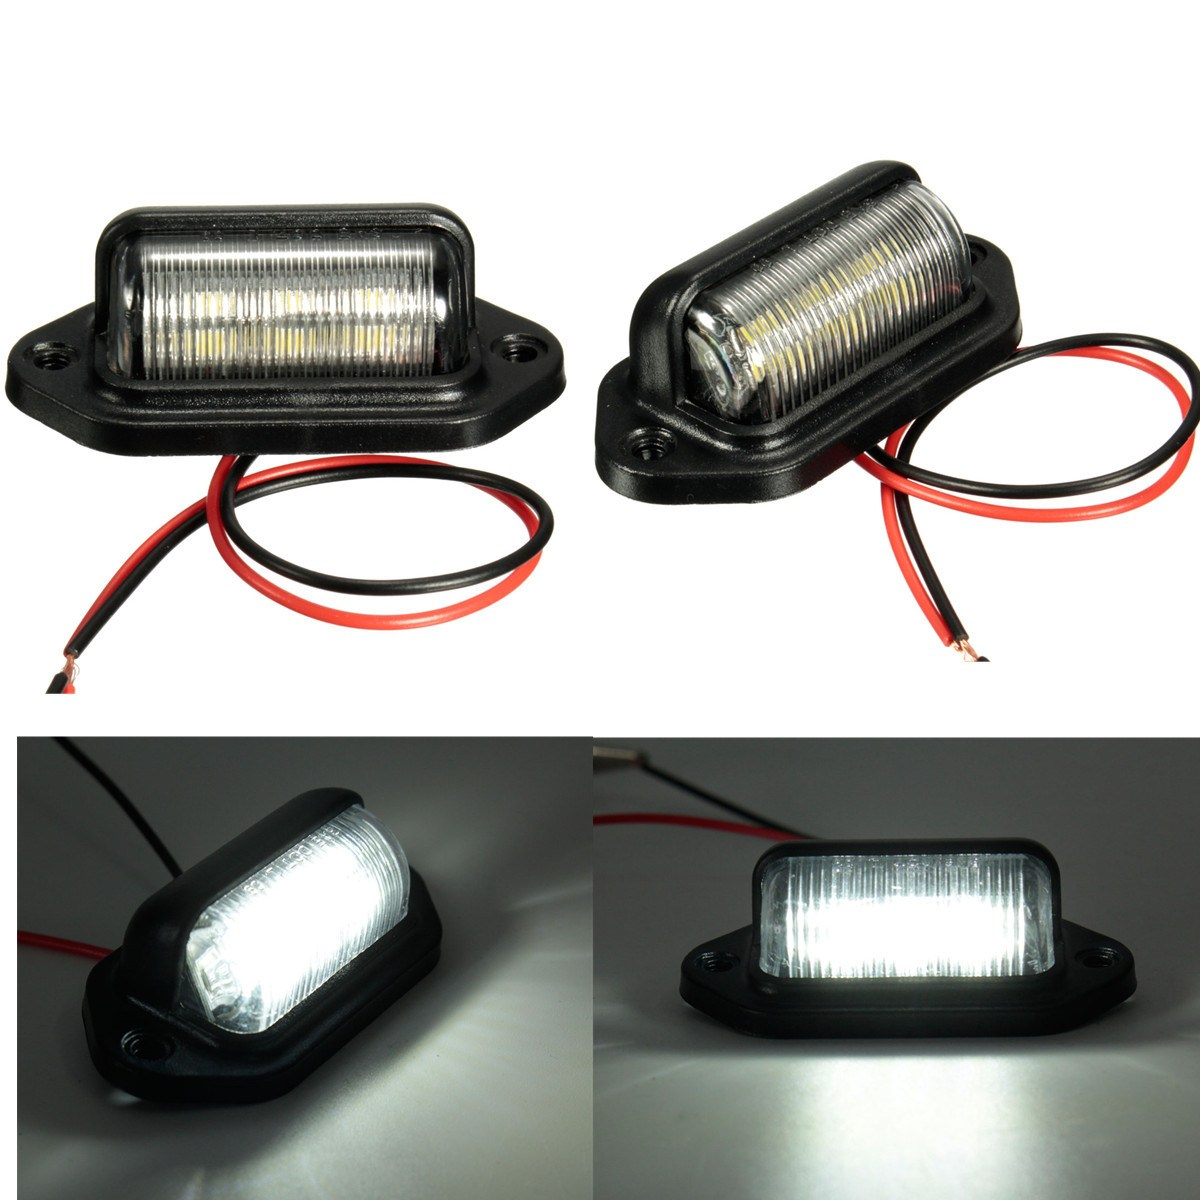 Number Plate Light License Plate Light Lamp Bulbs For Boats Motorcycle Automotive Aircraft RV Truck Trailer 12V 6LEDs